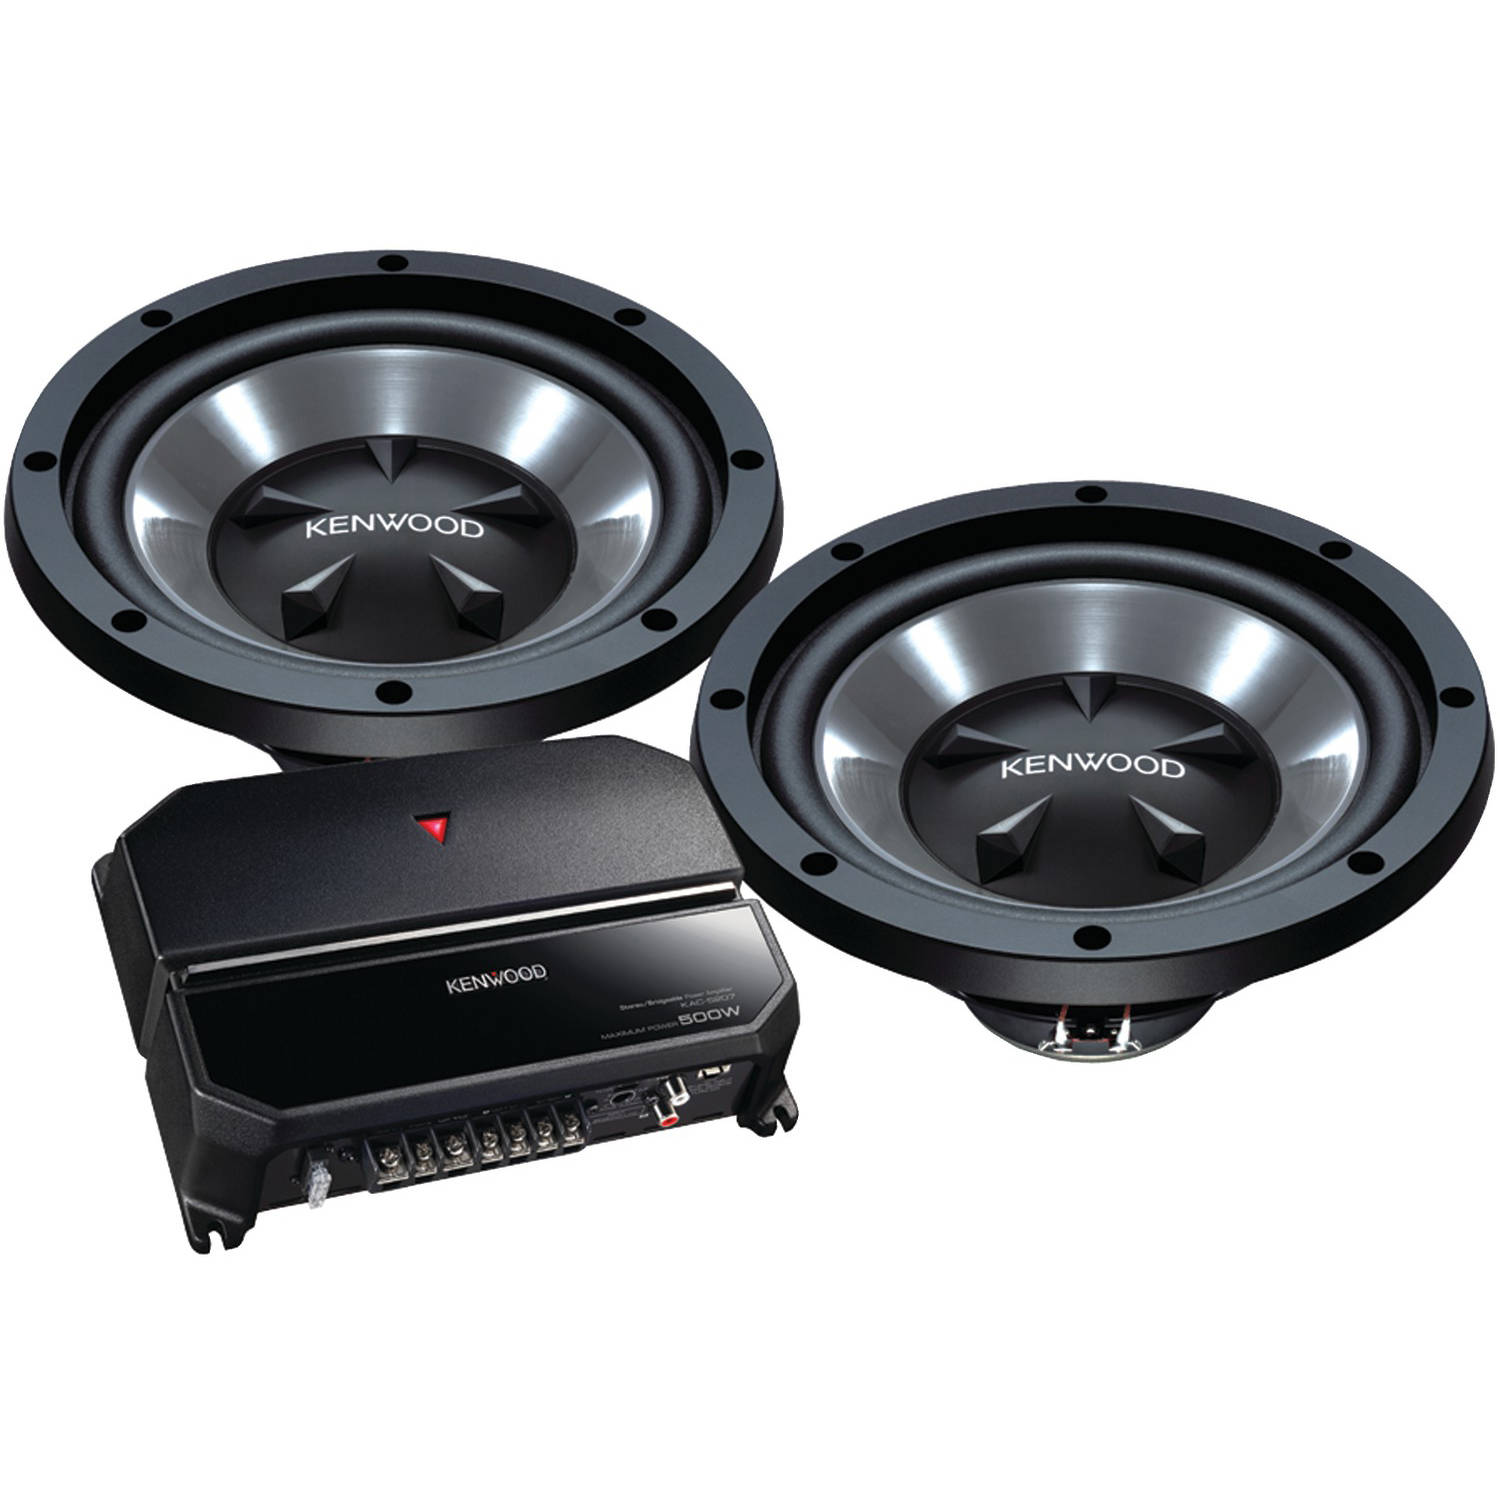 "Kenwood P-W1221 12"" Bass Party Pack (KAC-5207 2-Channel Amp and 2 KFC-W112S Subwoofers)"